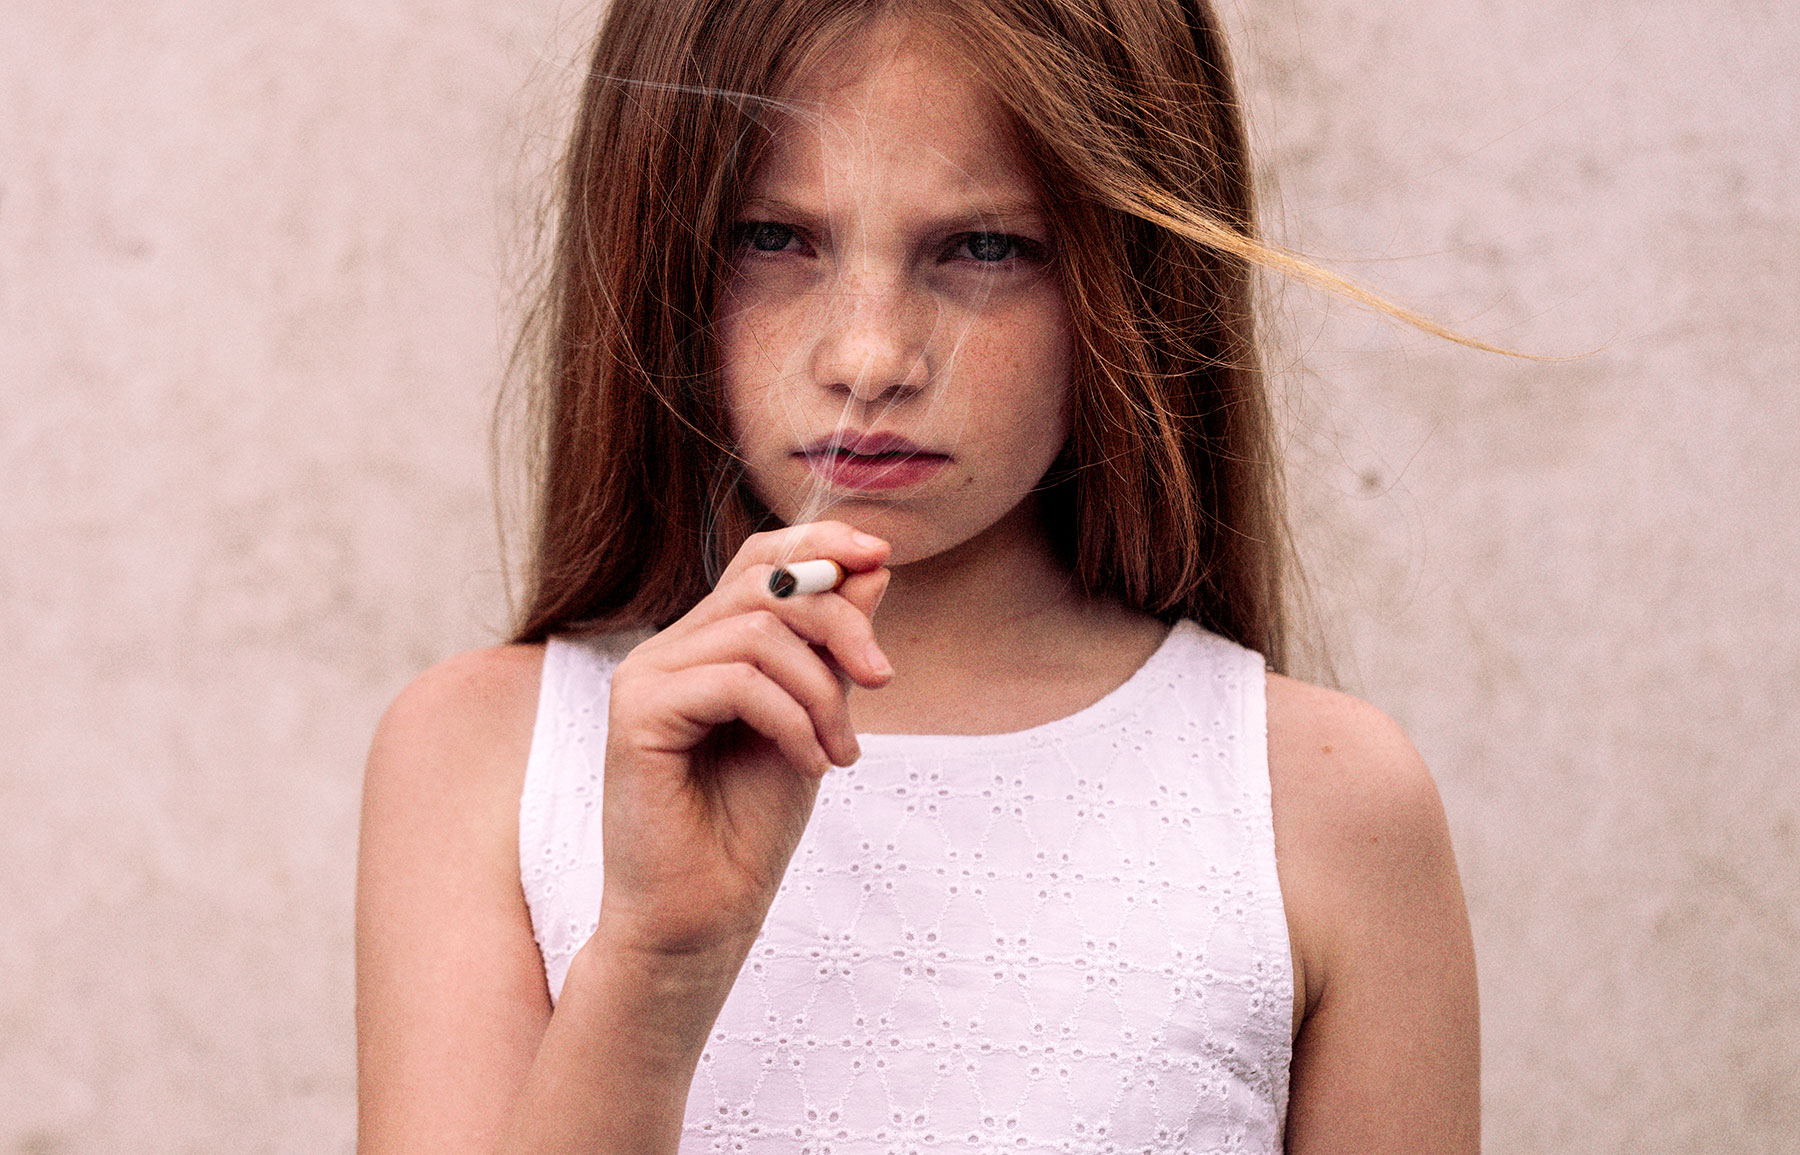 Good Boy Wolf Photographer, young girl wearing a white dress smoking a cigarette